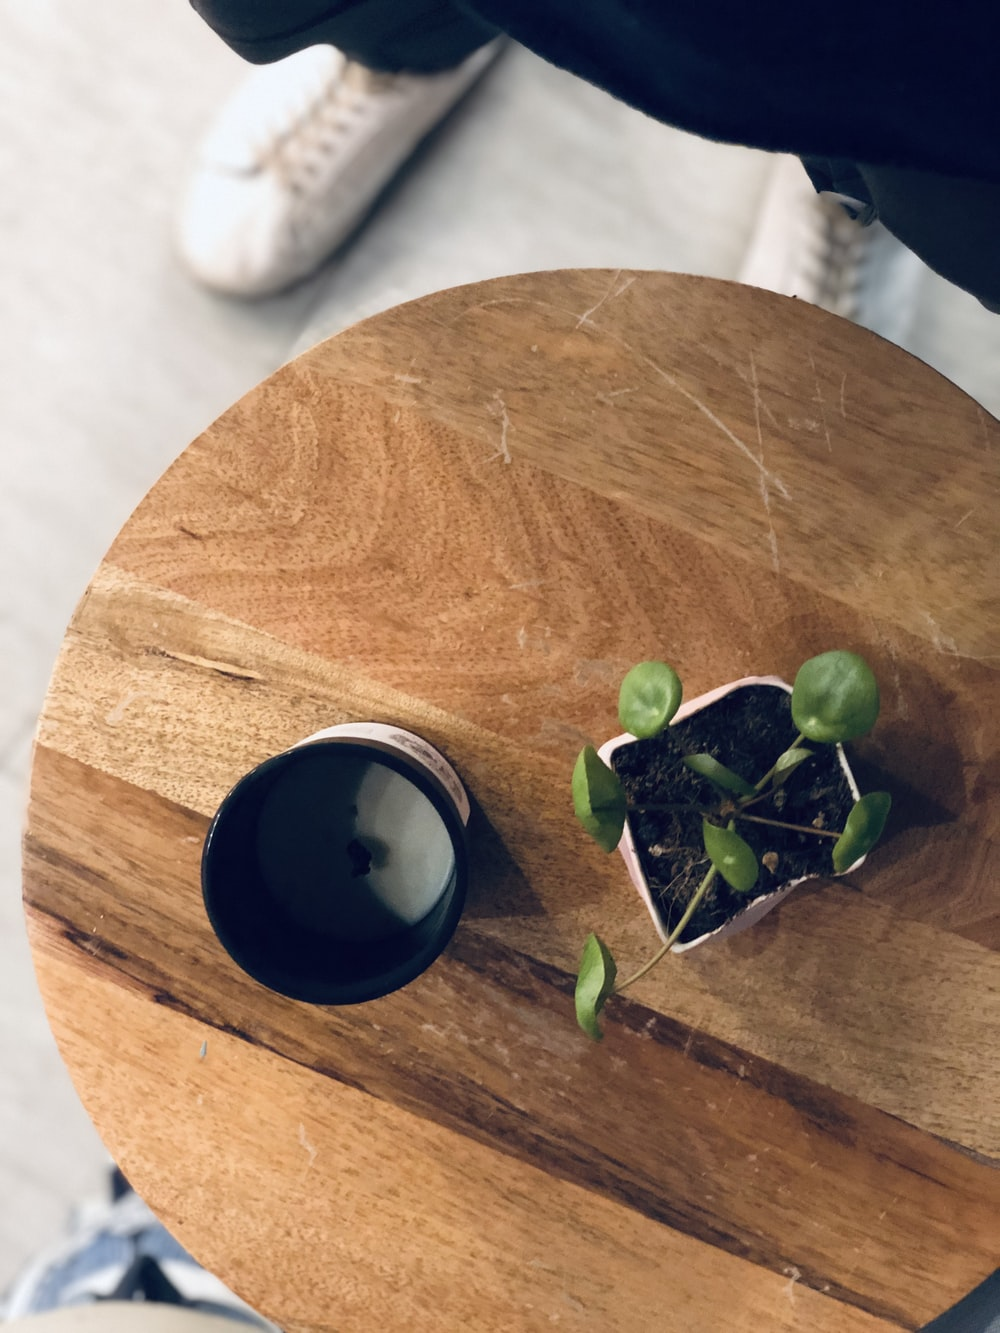 green-leafed plant with white vase on brown table